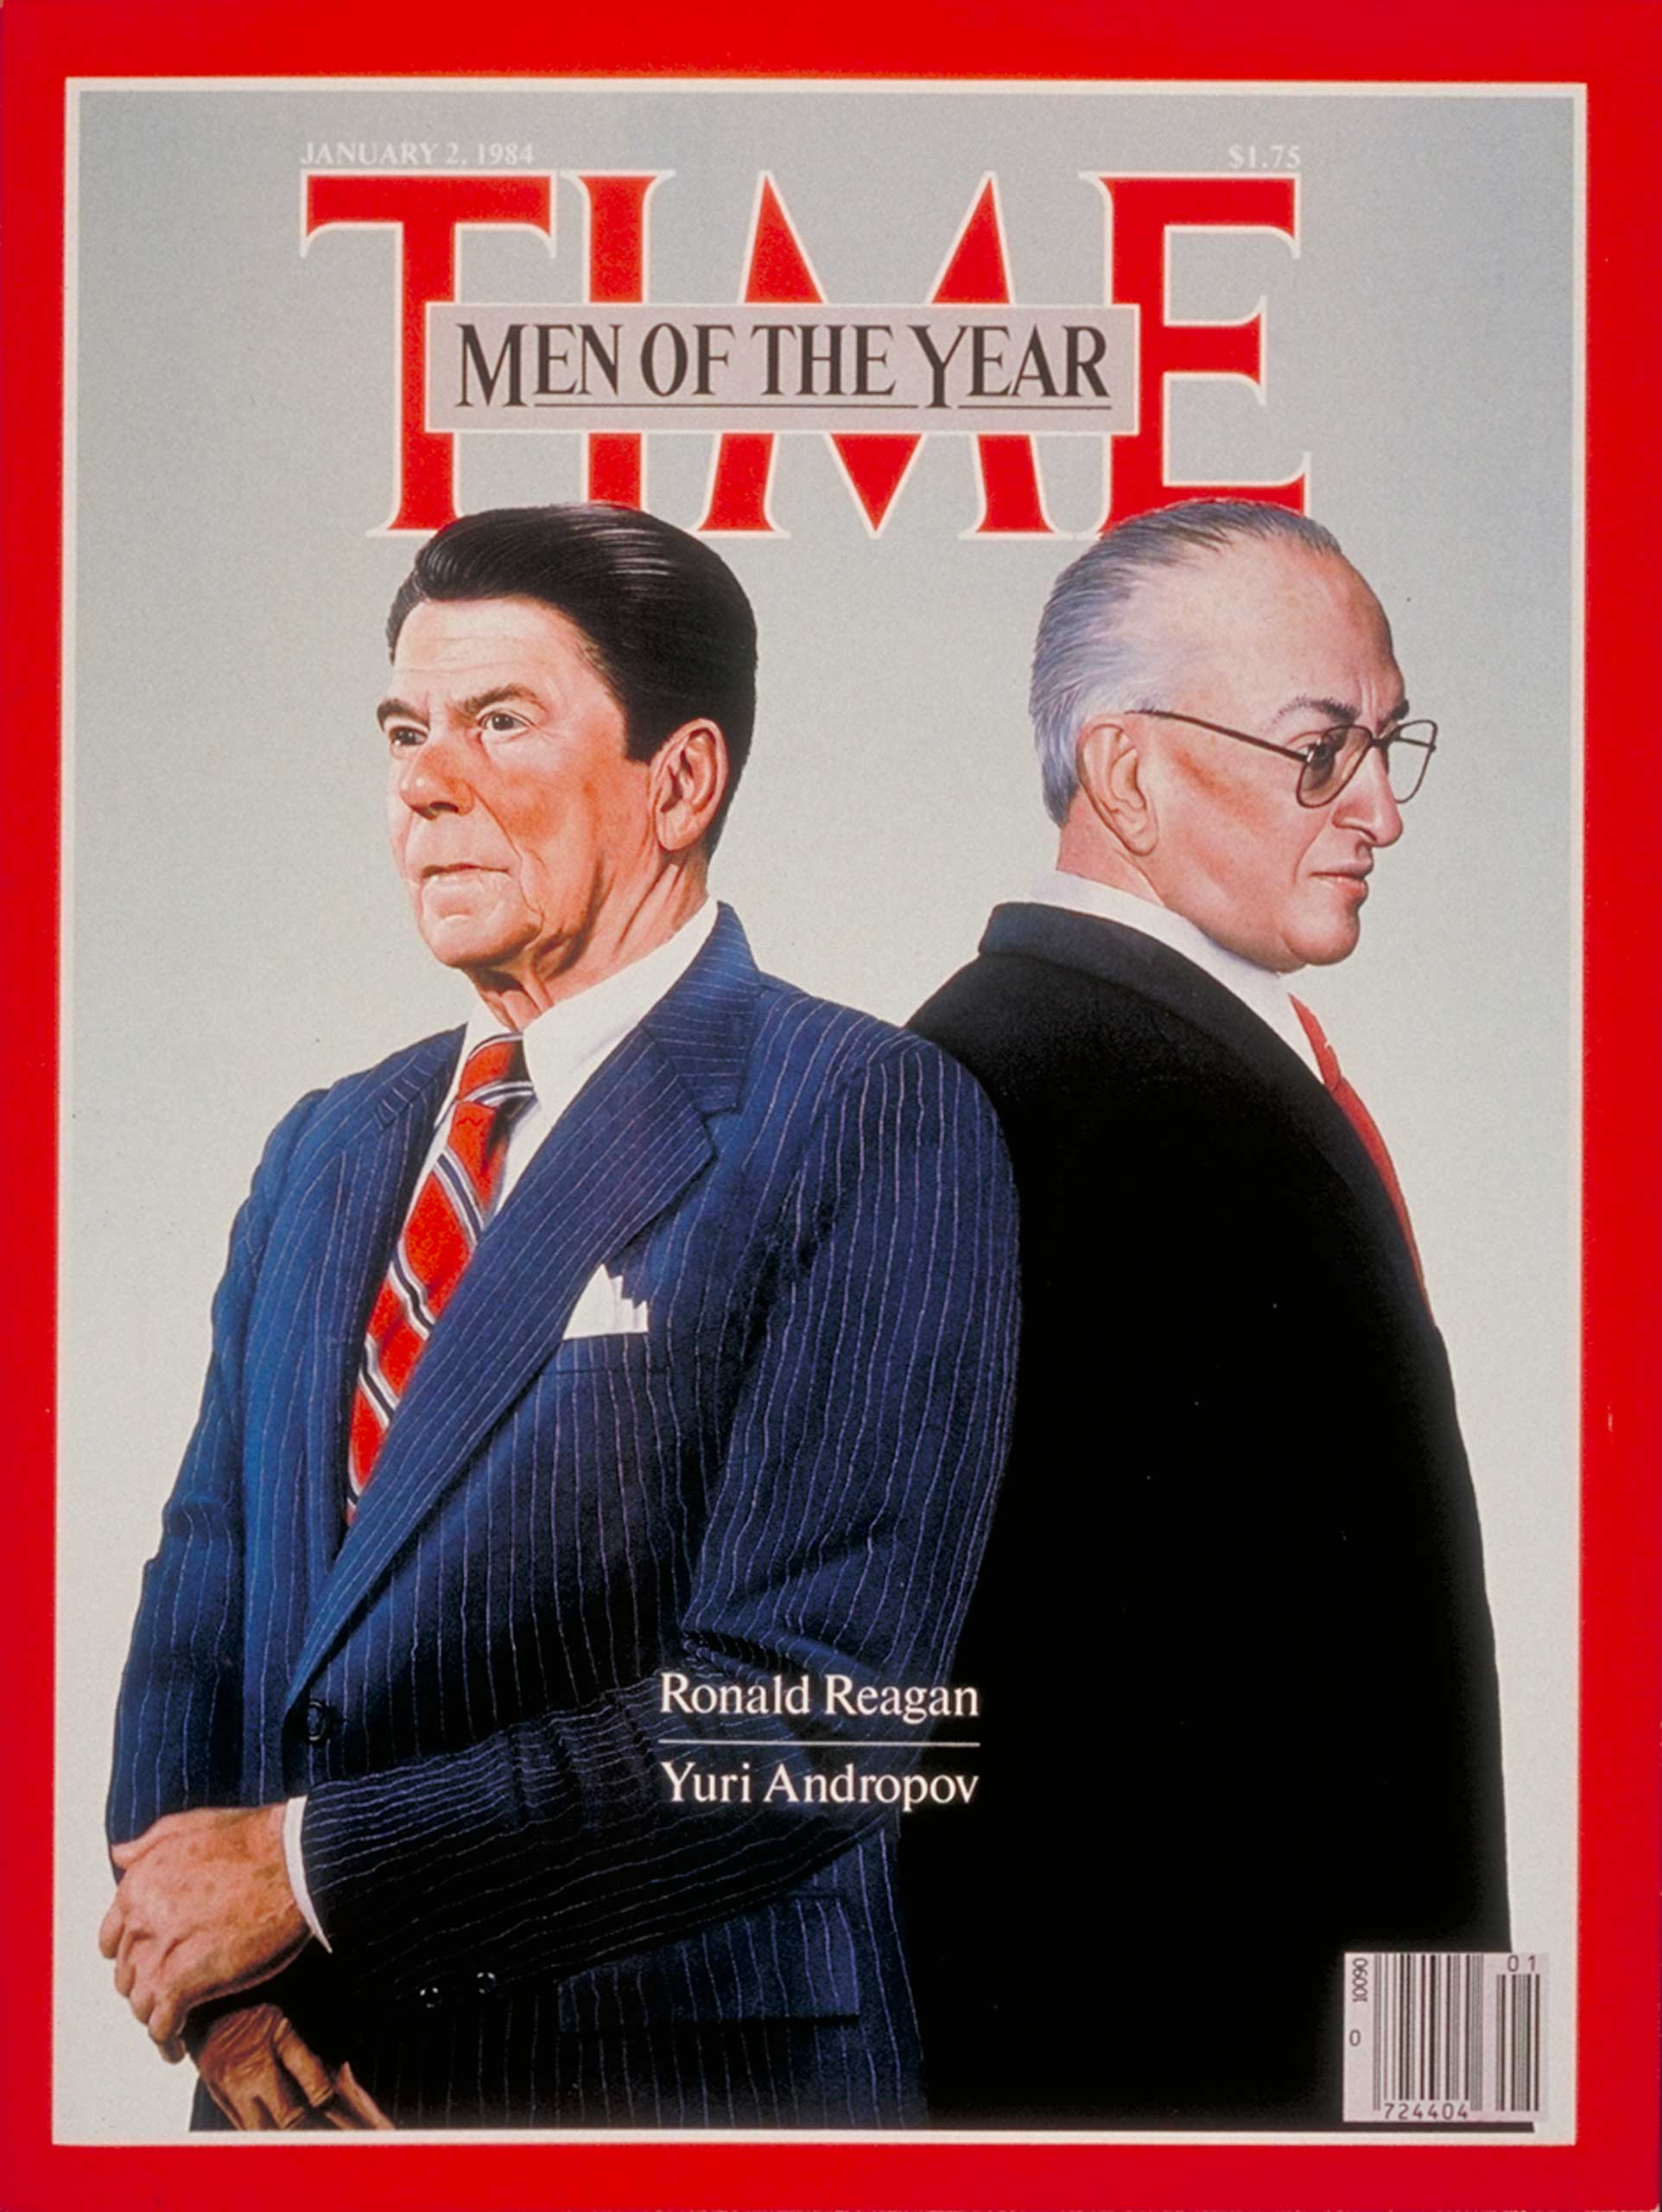 1983: President Ronald Reagan and Yuri Andropov